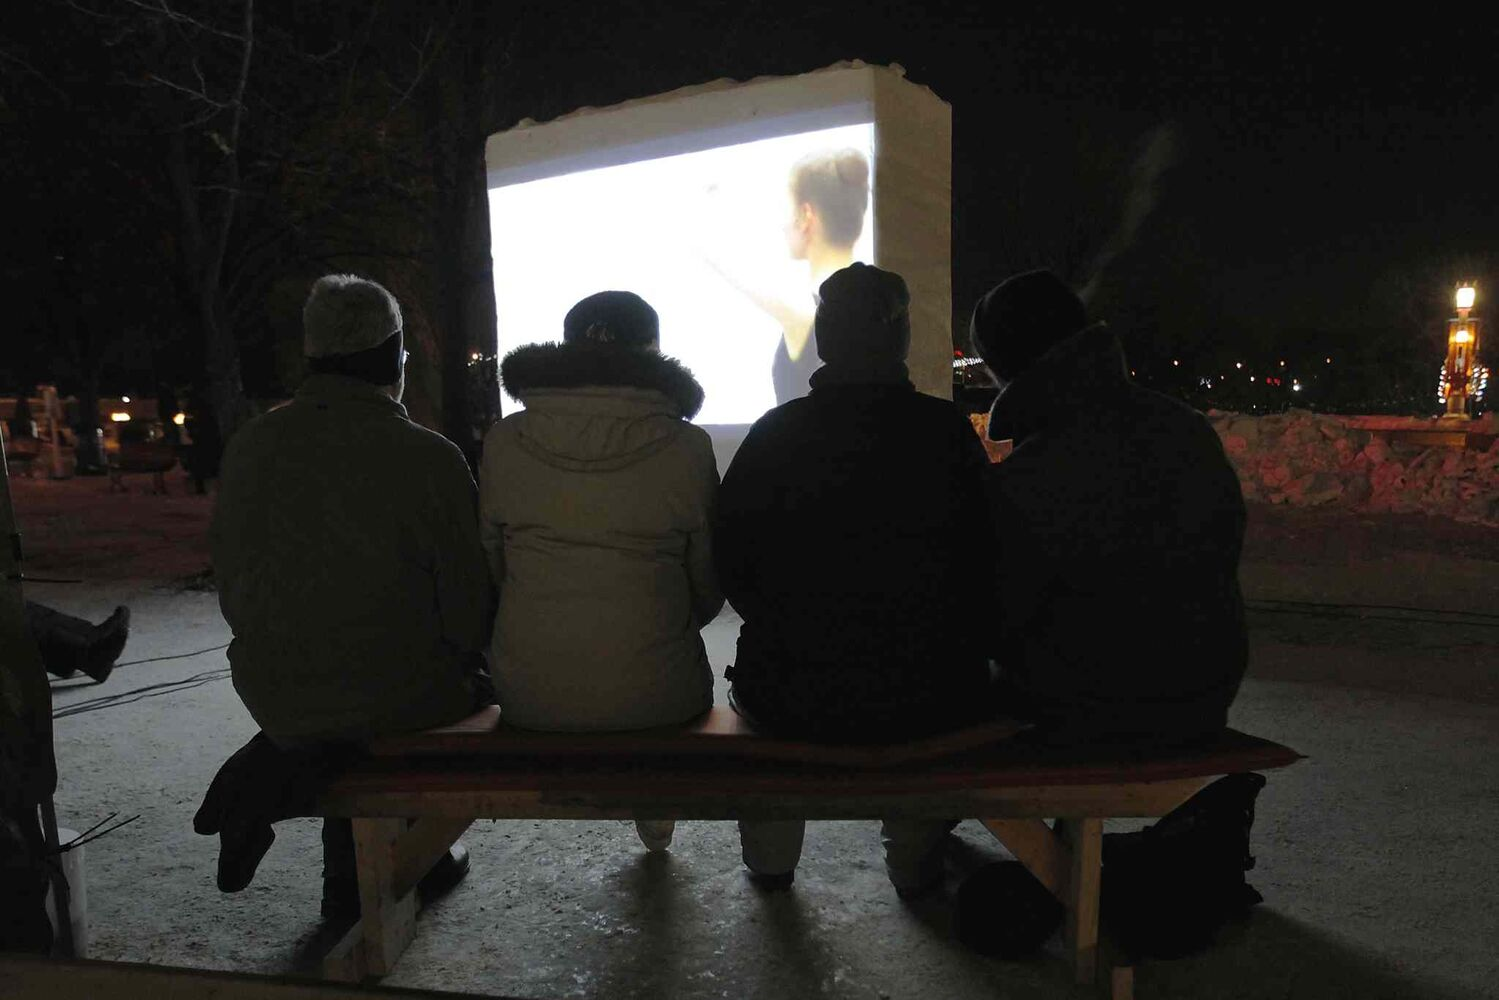 People watch a movie during the Canadian Sport Film Festival. (JOHN WOODS / WINNIPEG FREE PRESS)